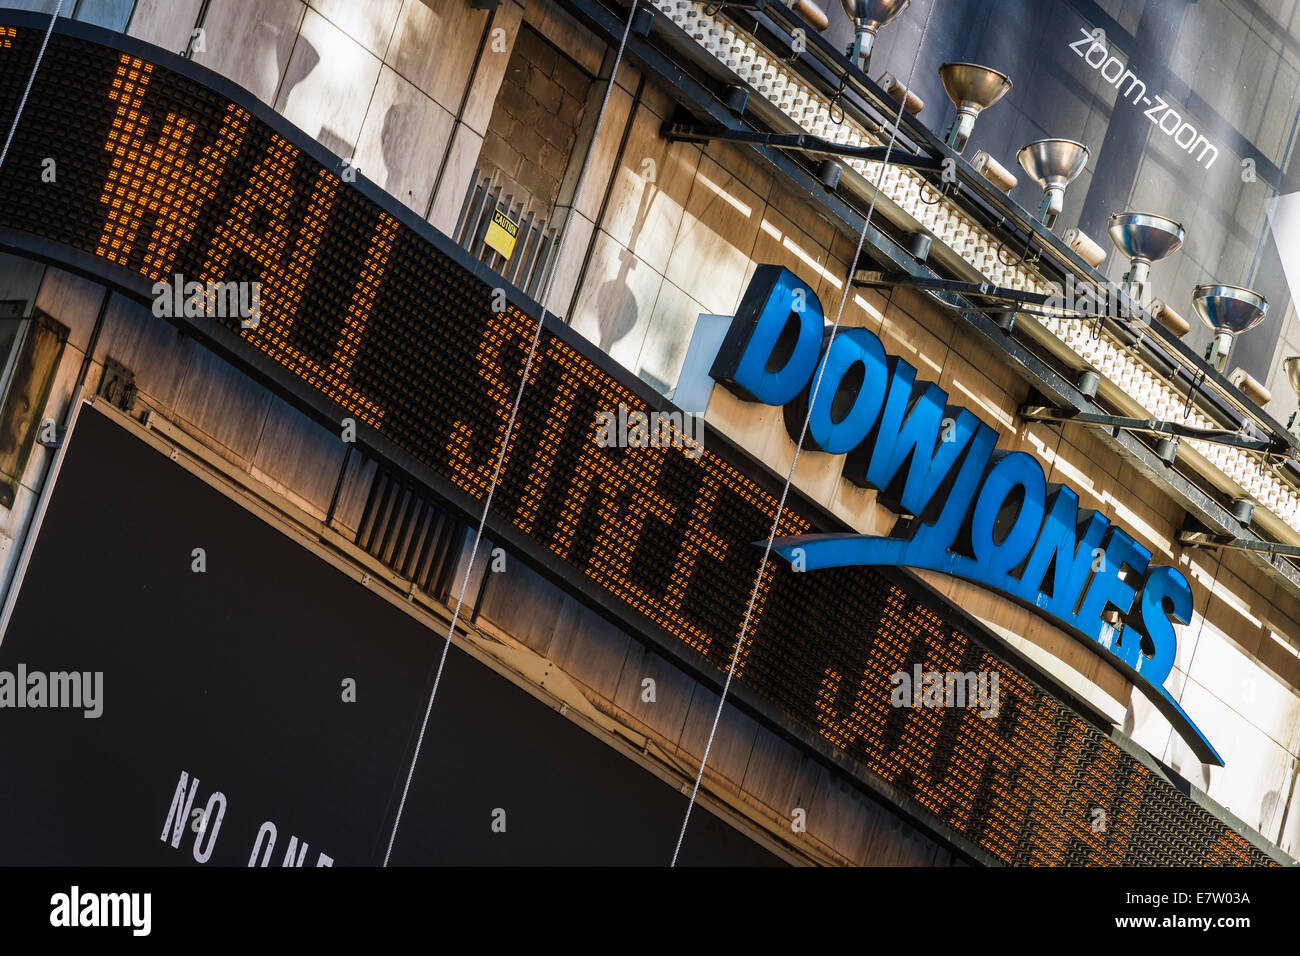 A neon sign displays the latest Wall Street Journal headlines under the Dow Jones logo in Times Square, Midtown - Stock Image